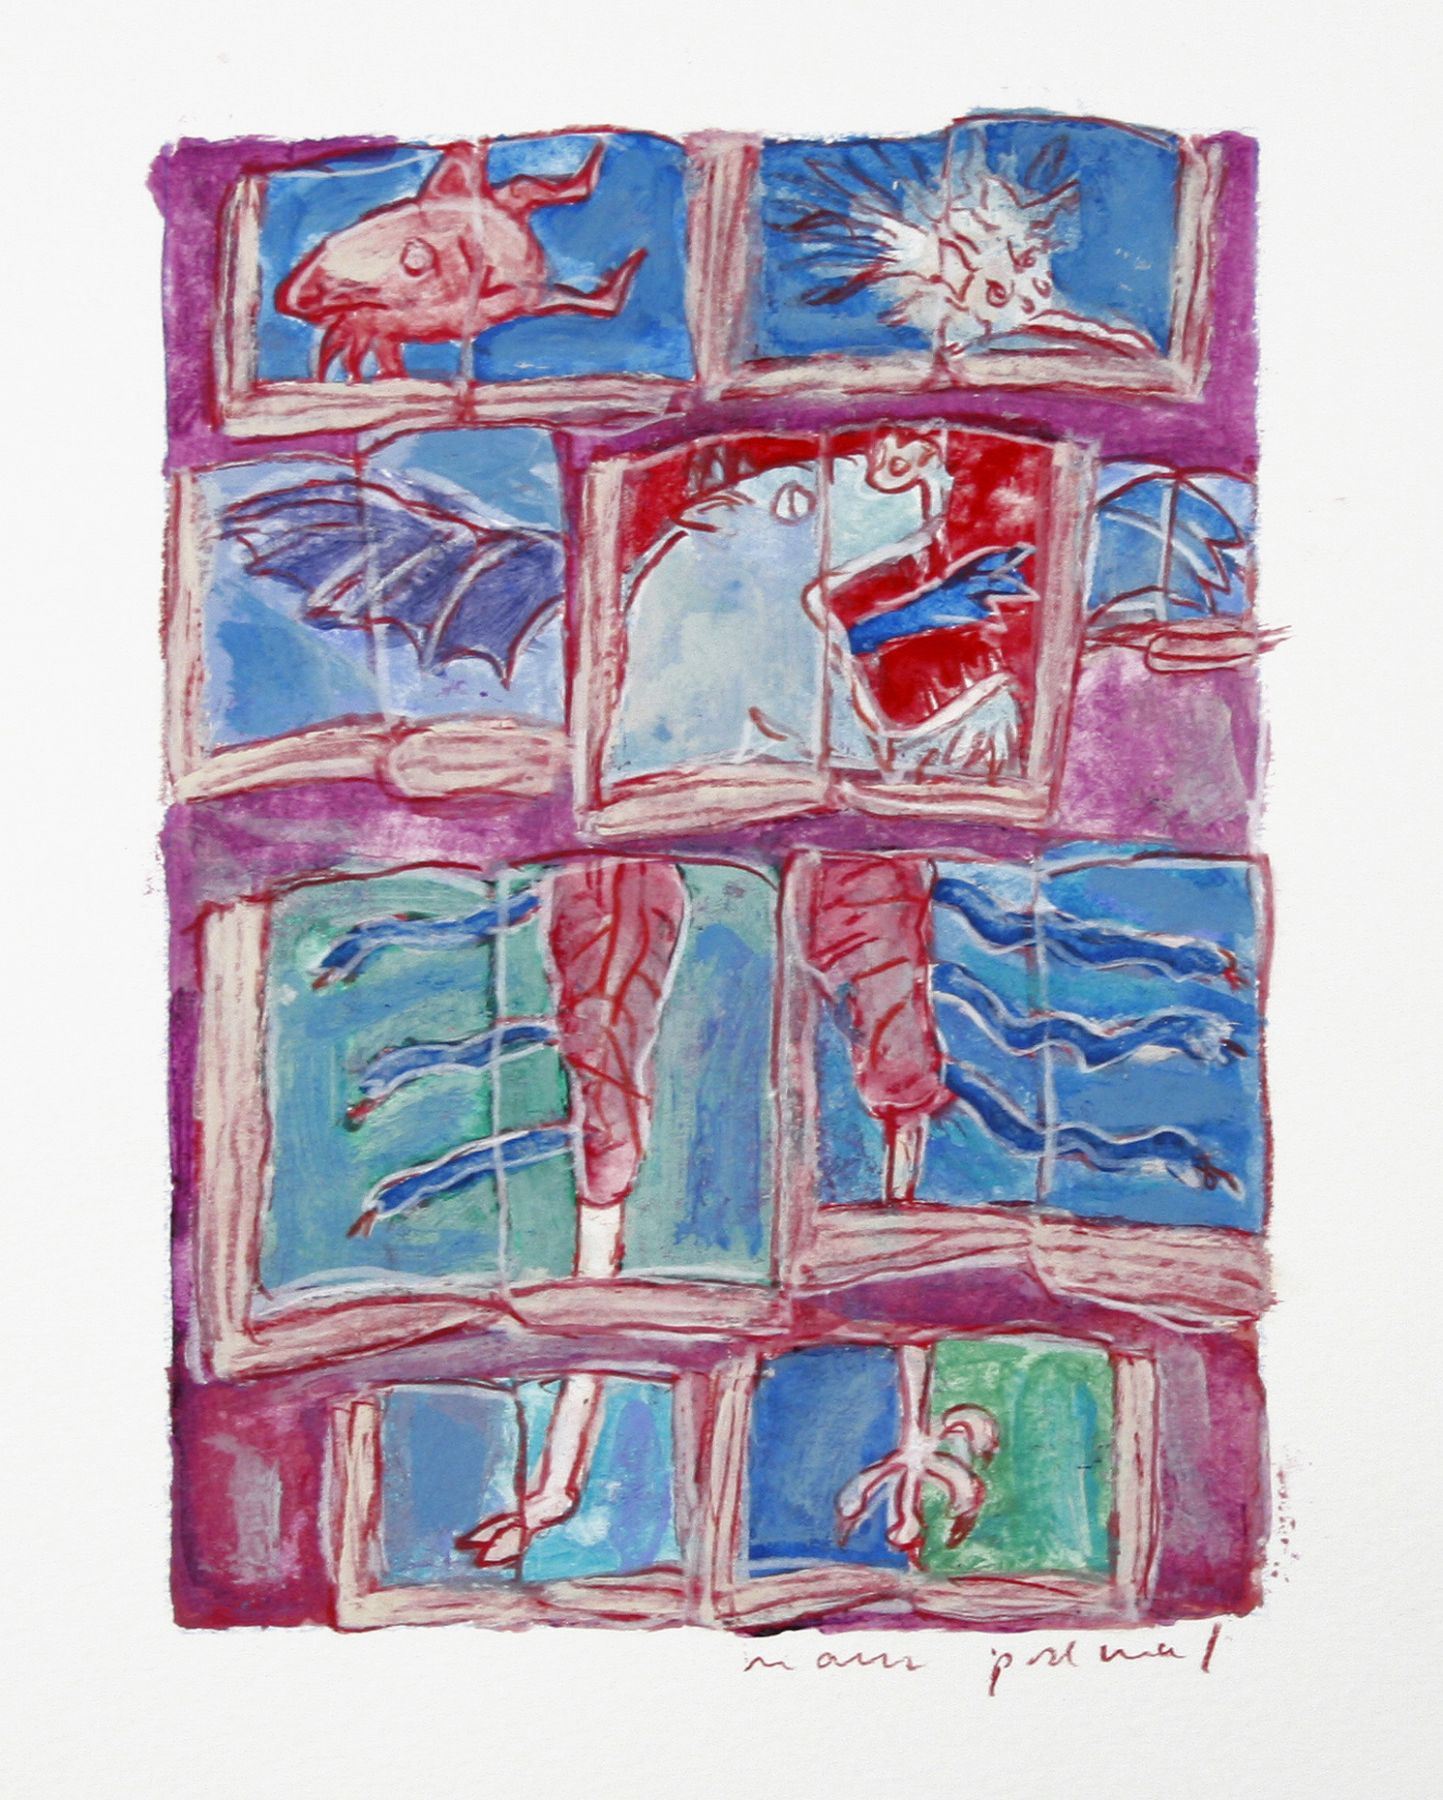 Mark Podwal, Demons, 2006, acrylic, gouache and colored pencil on paper, 7 1/2 x 5 1/2 inches